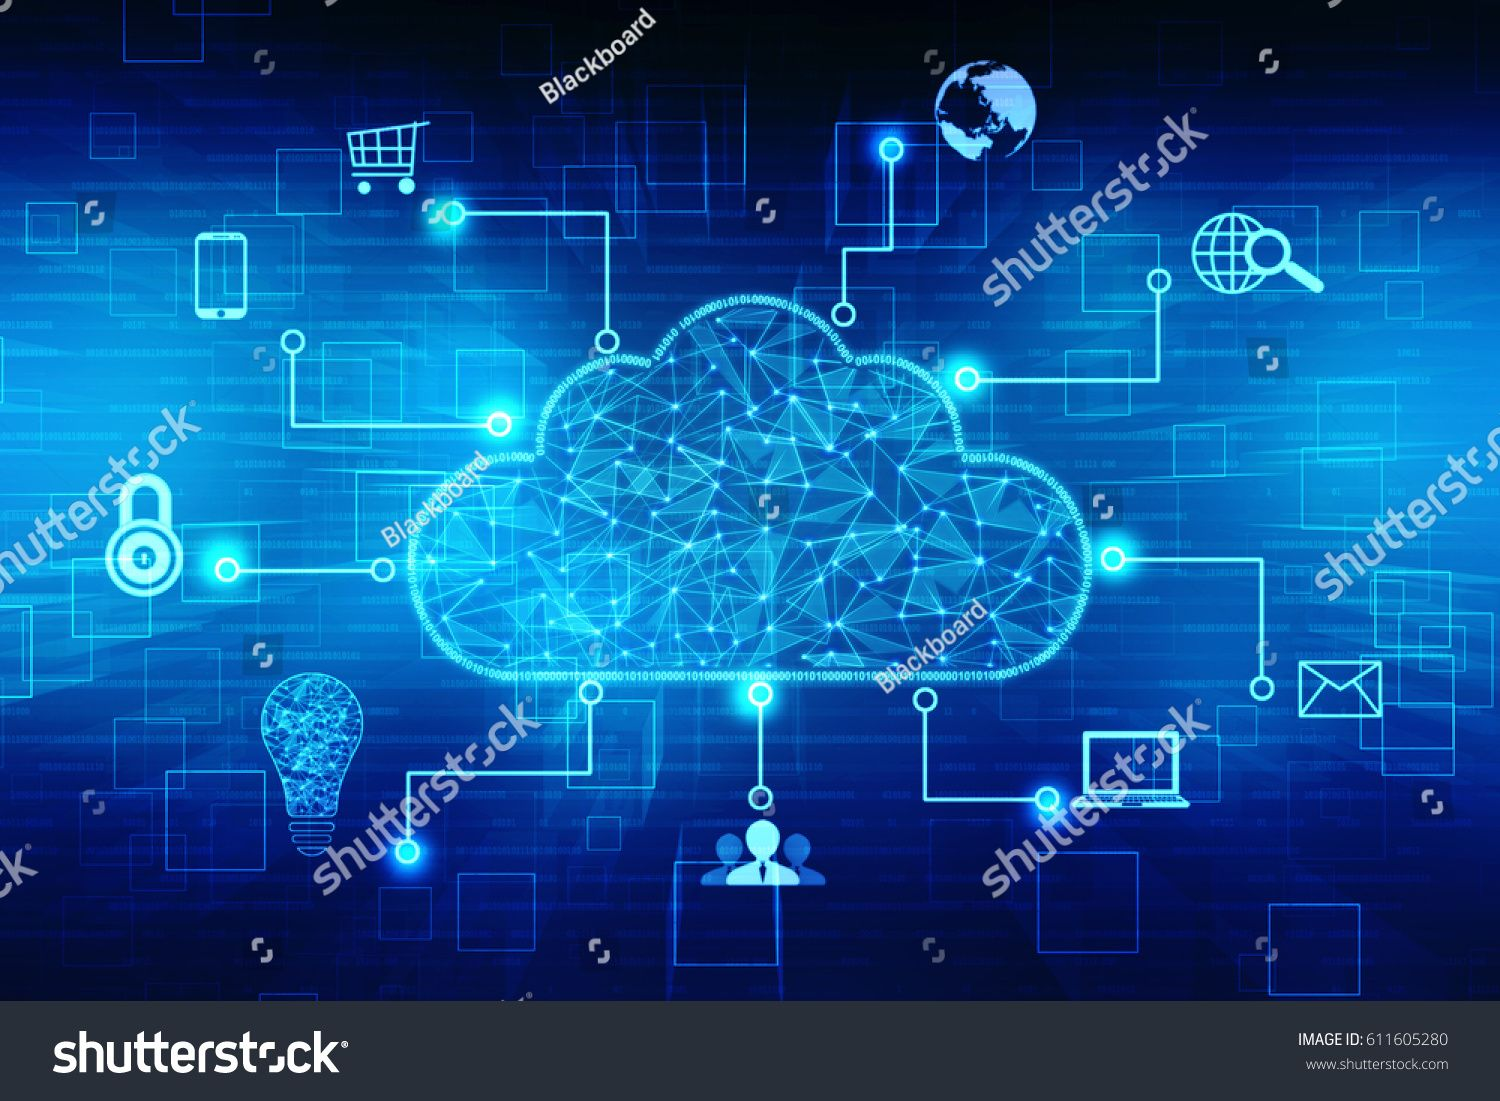 on demand services in cloud computing